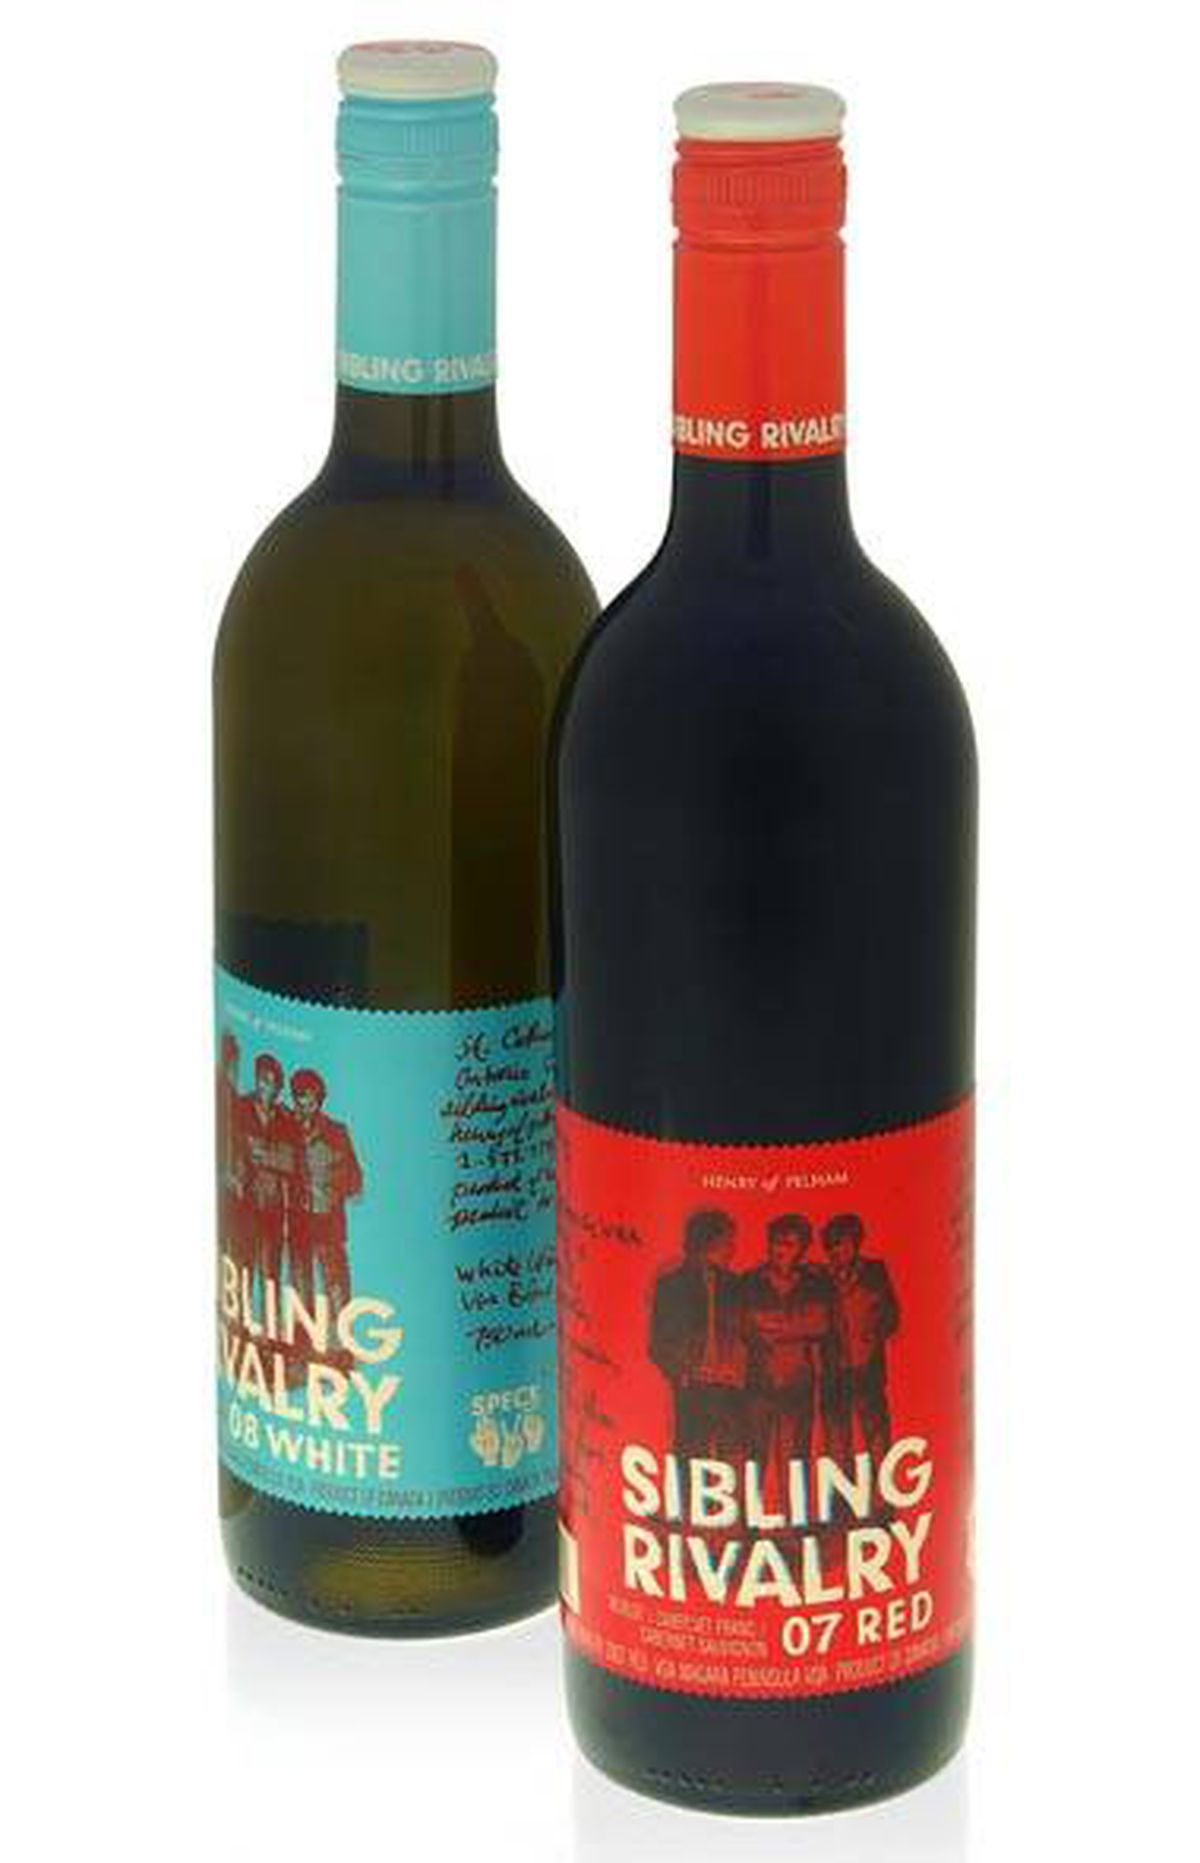 Henry of Pelham's Sibling Rivalry line is part of a trend toward locally sourced wines.